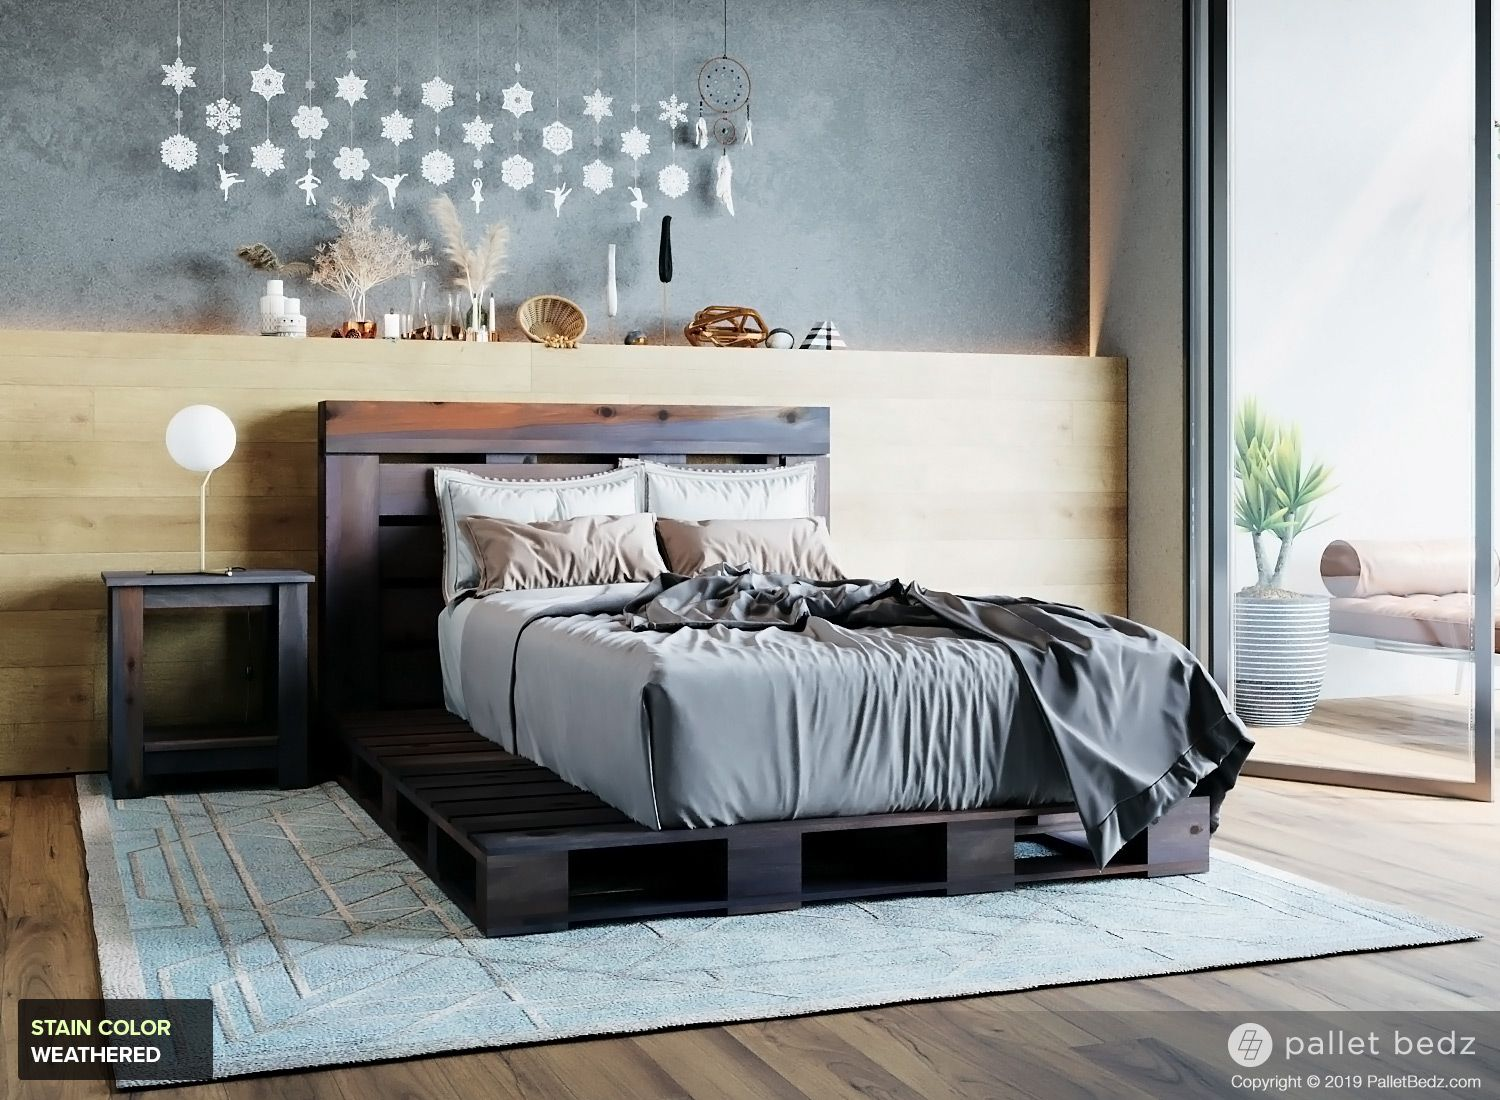 The Twin Pallet Bed in 2020 | Bed weather, Pallet beds ...